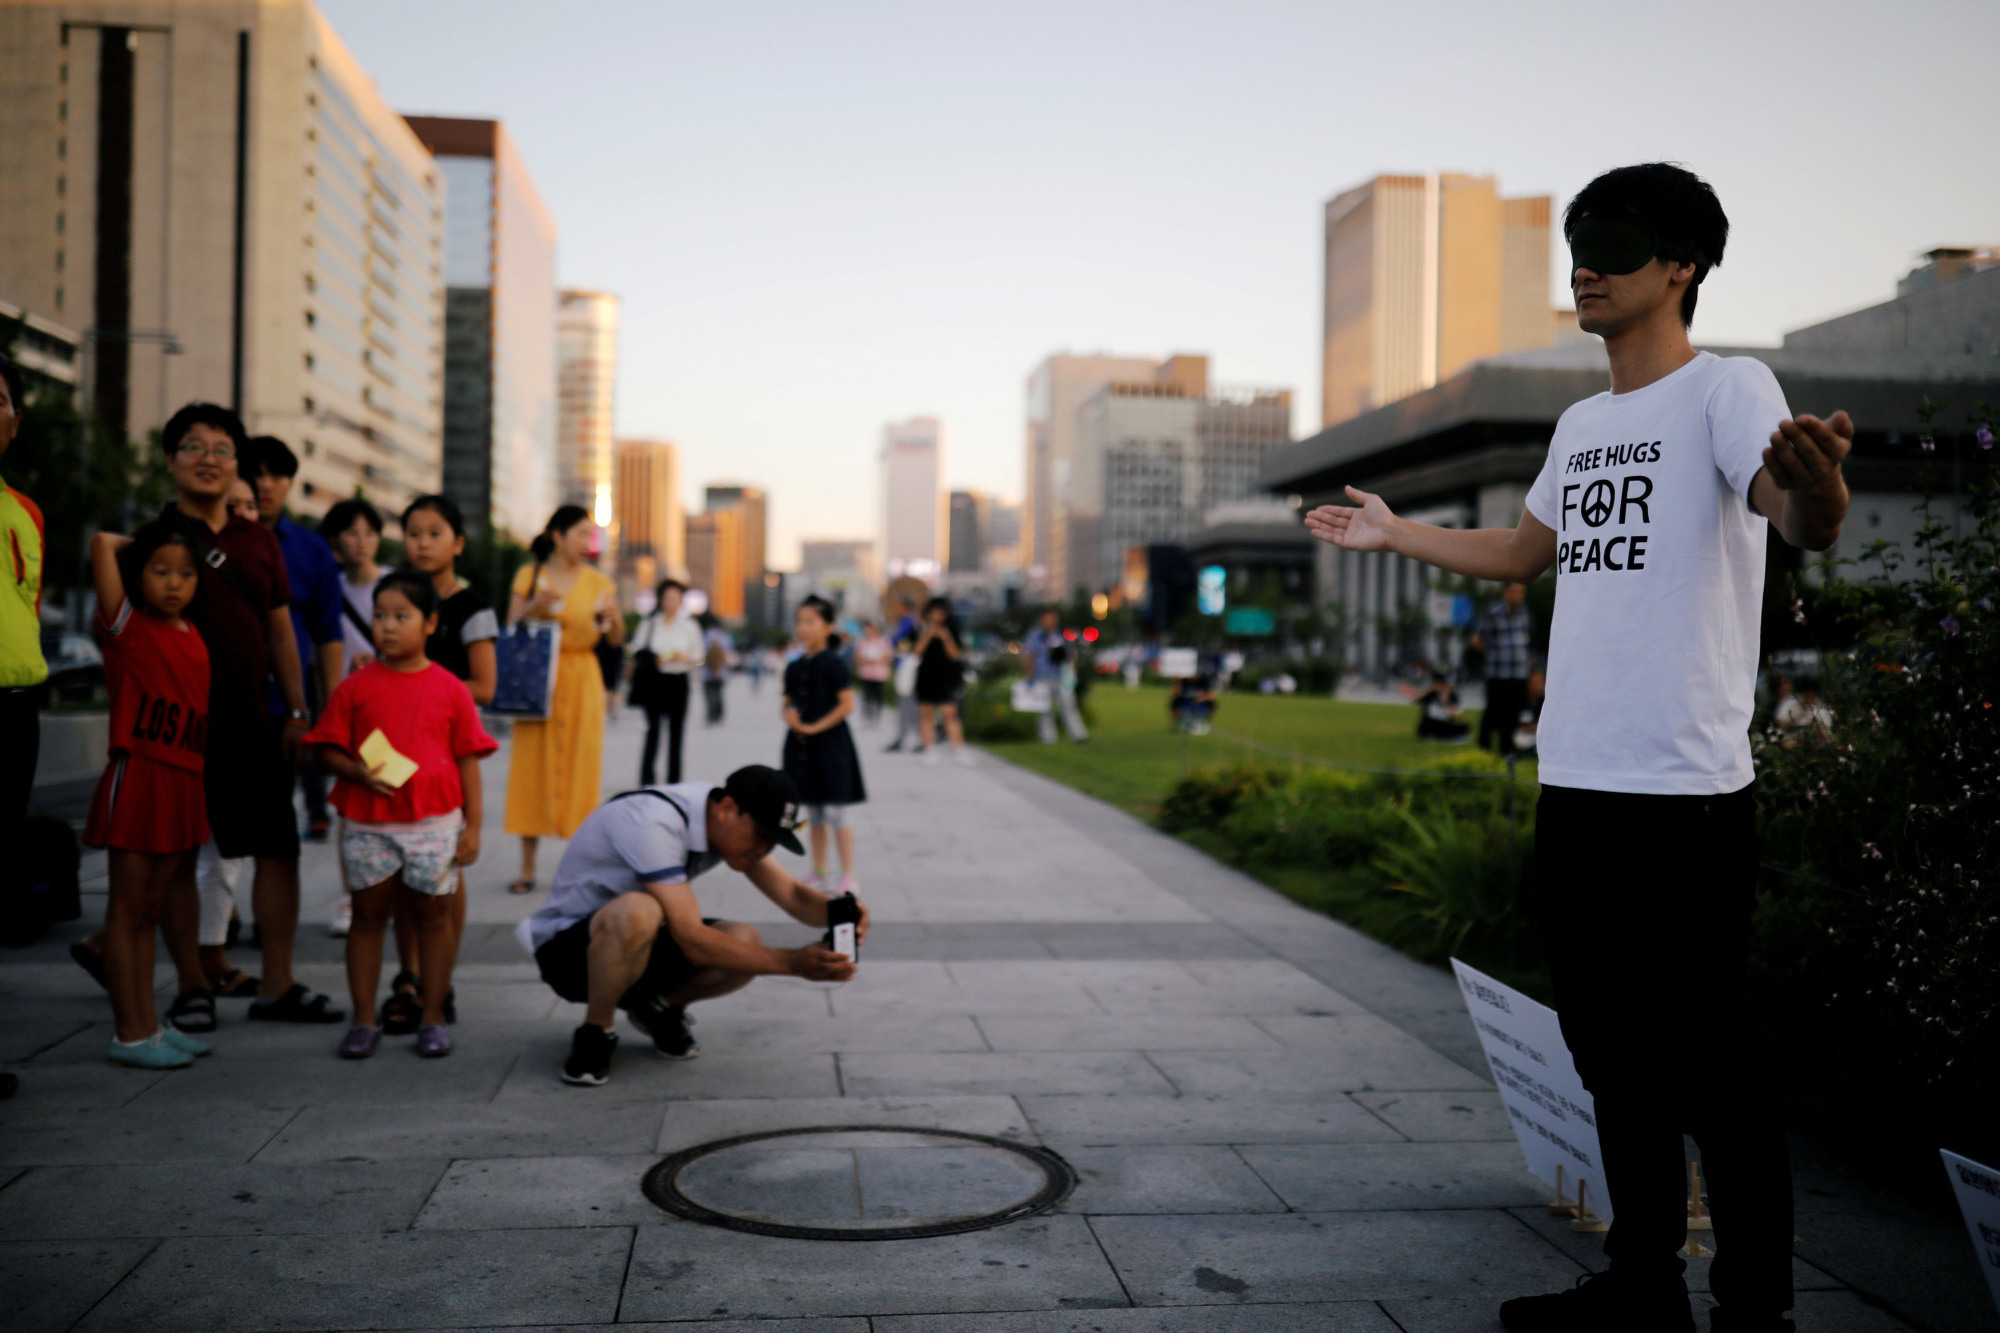 A Japanese man offers free hugs to South Koreans attending an anti-Japan rally in Seoul on Saturday. | REUTERS